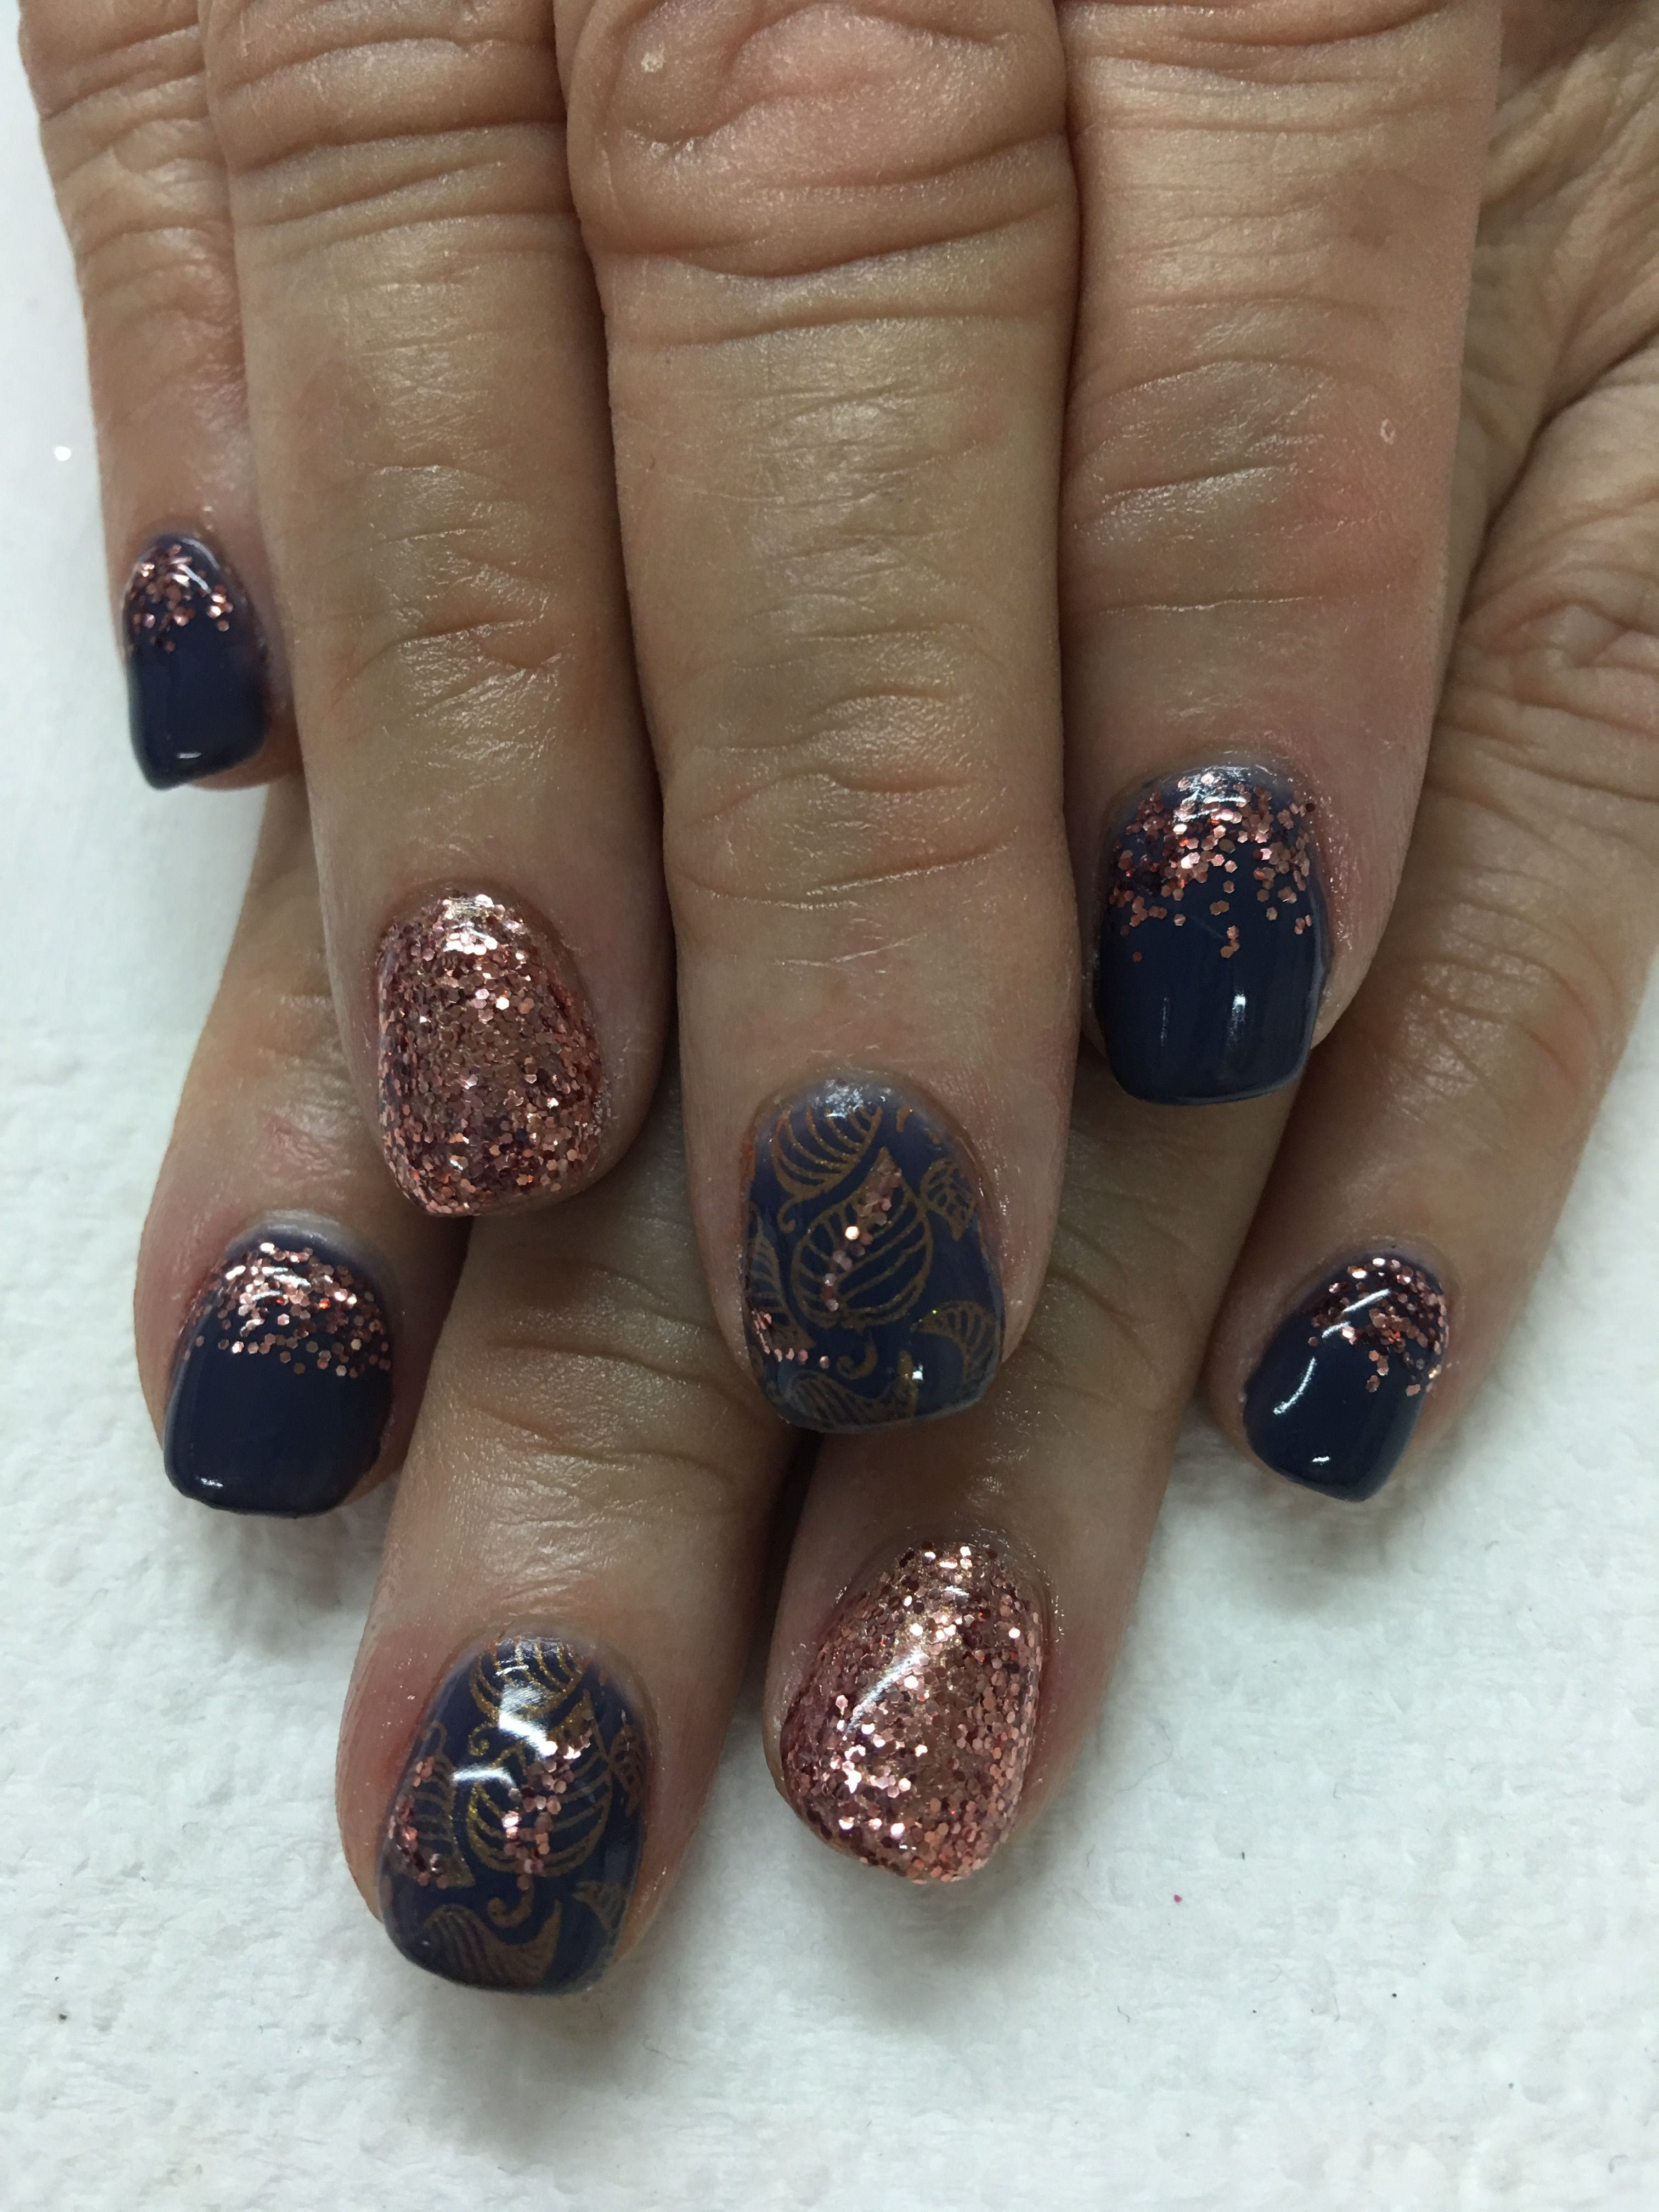 OPI Less is Norse dusty blue and Light Elegance Betty Davis Rose ...